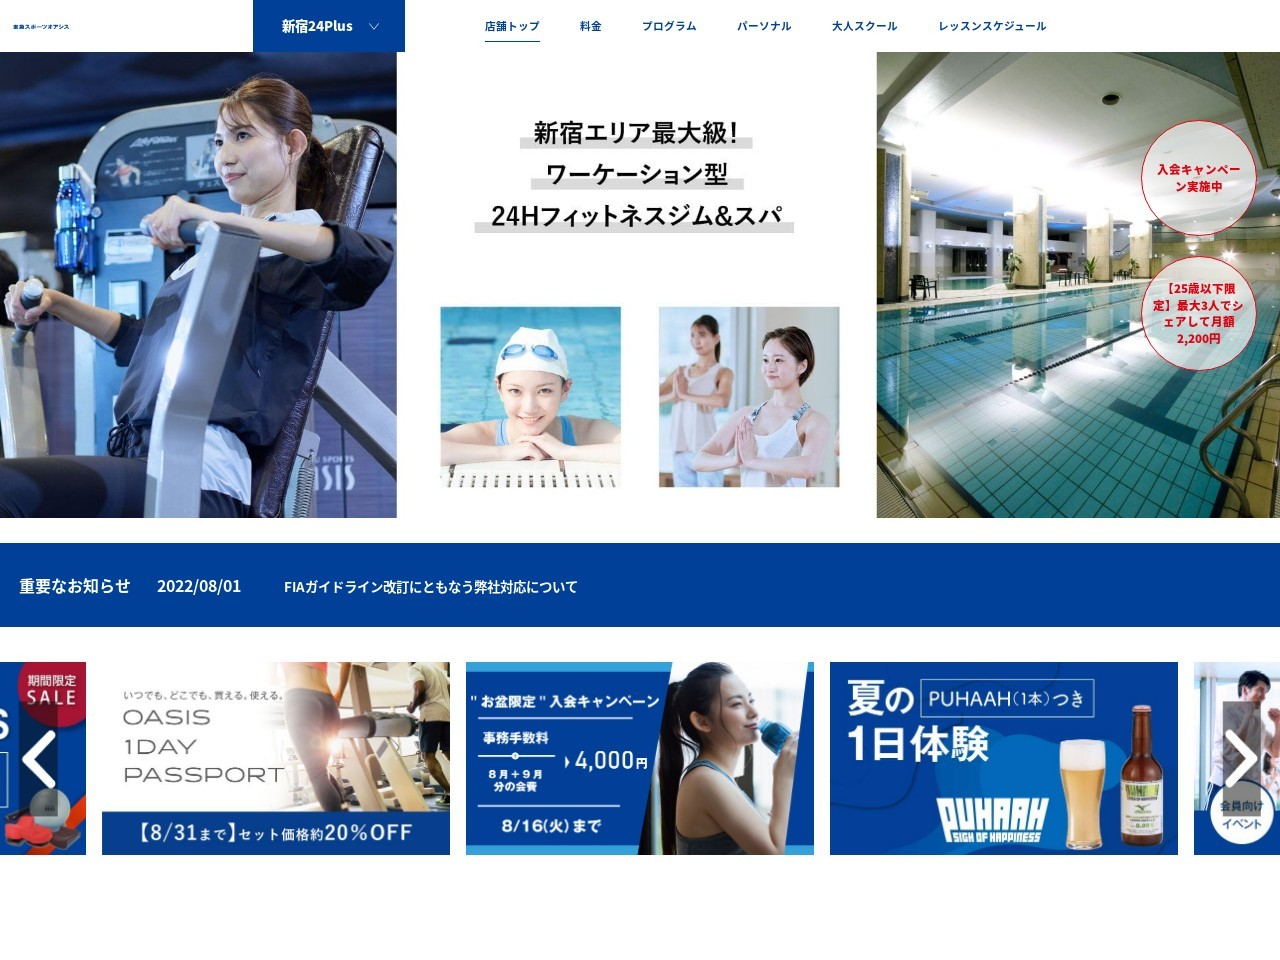 Oasis新宿24Plusのイメージ写真